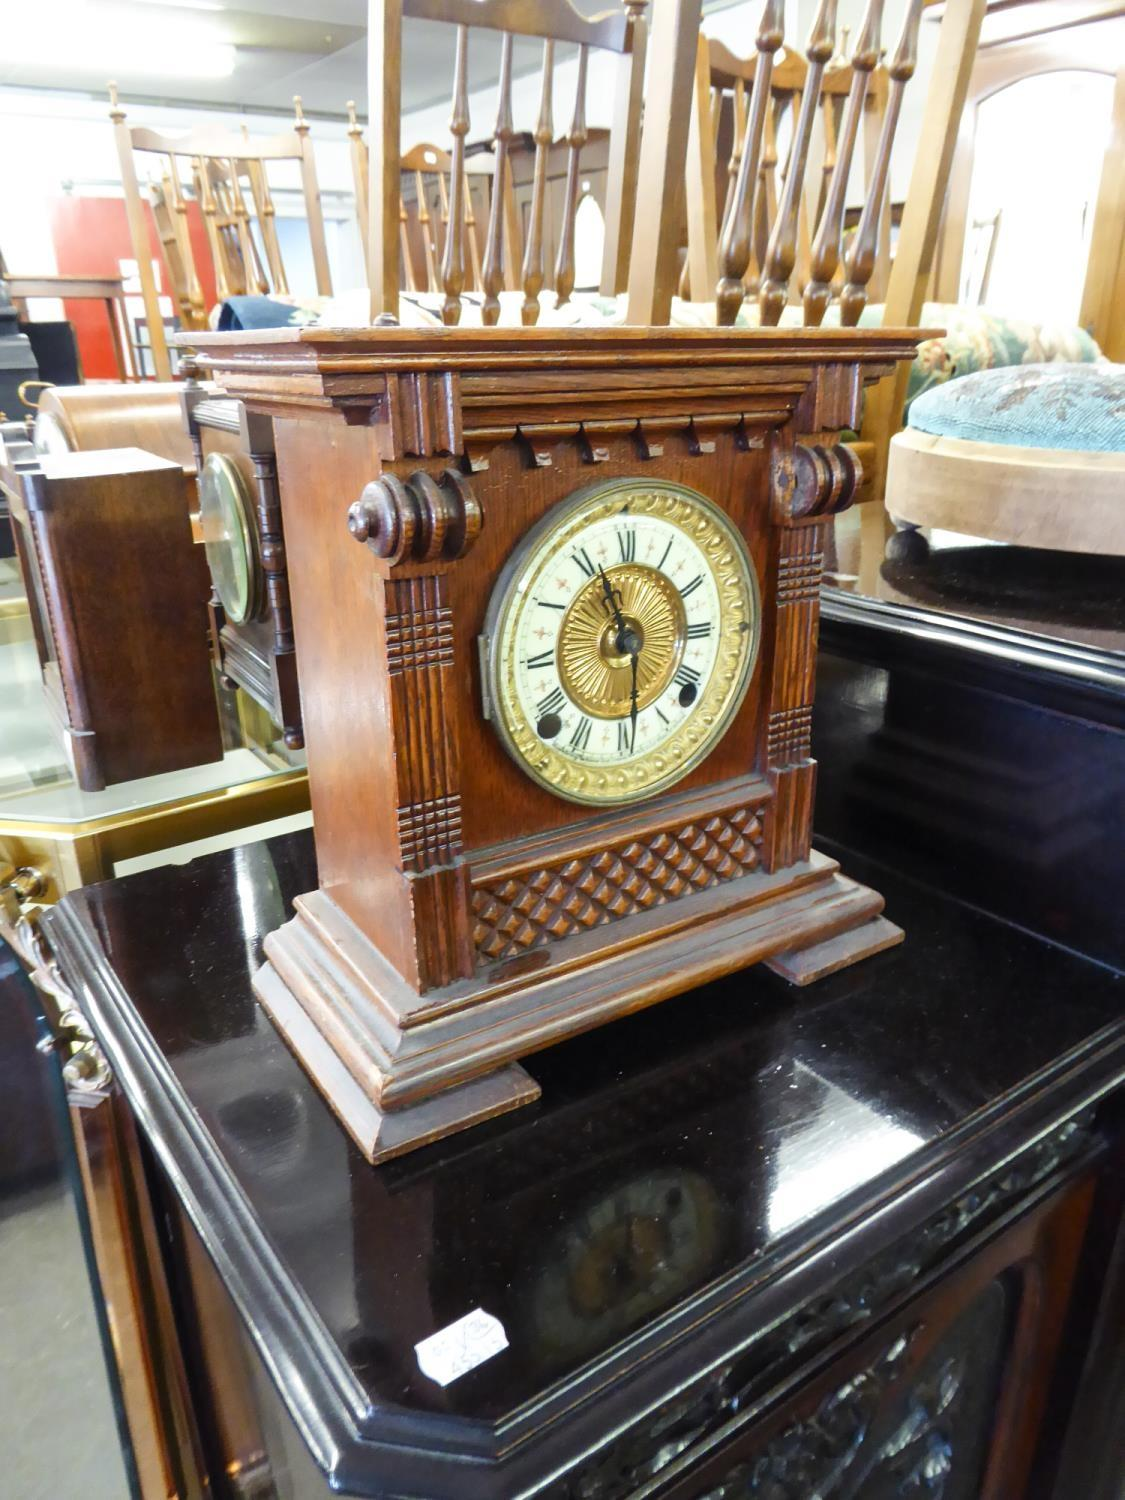 Lot 167 - ANSONIA CLOCK CO - NEW YORK OAK CASE MANTEL CLOCK WITH GILT METAL AND ENAMEL TWO PART ROMAN DIAL NOW